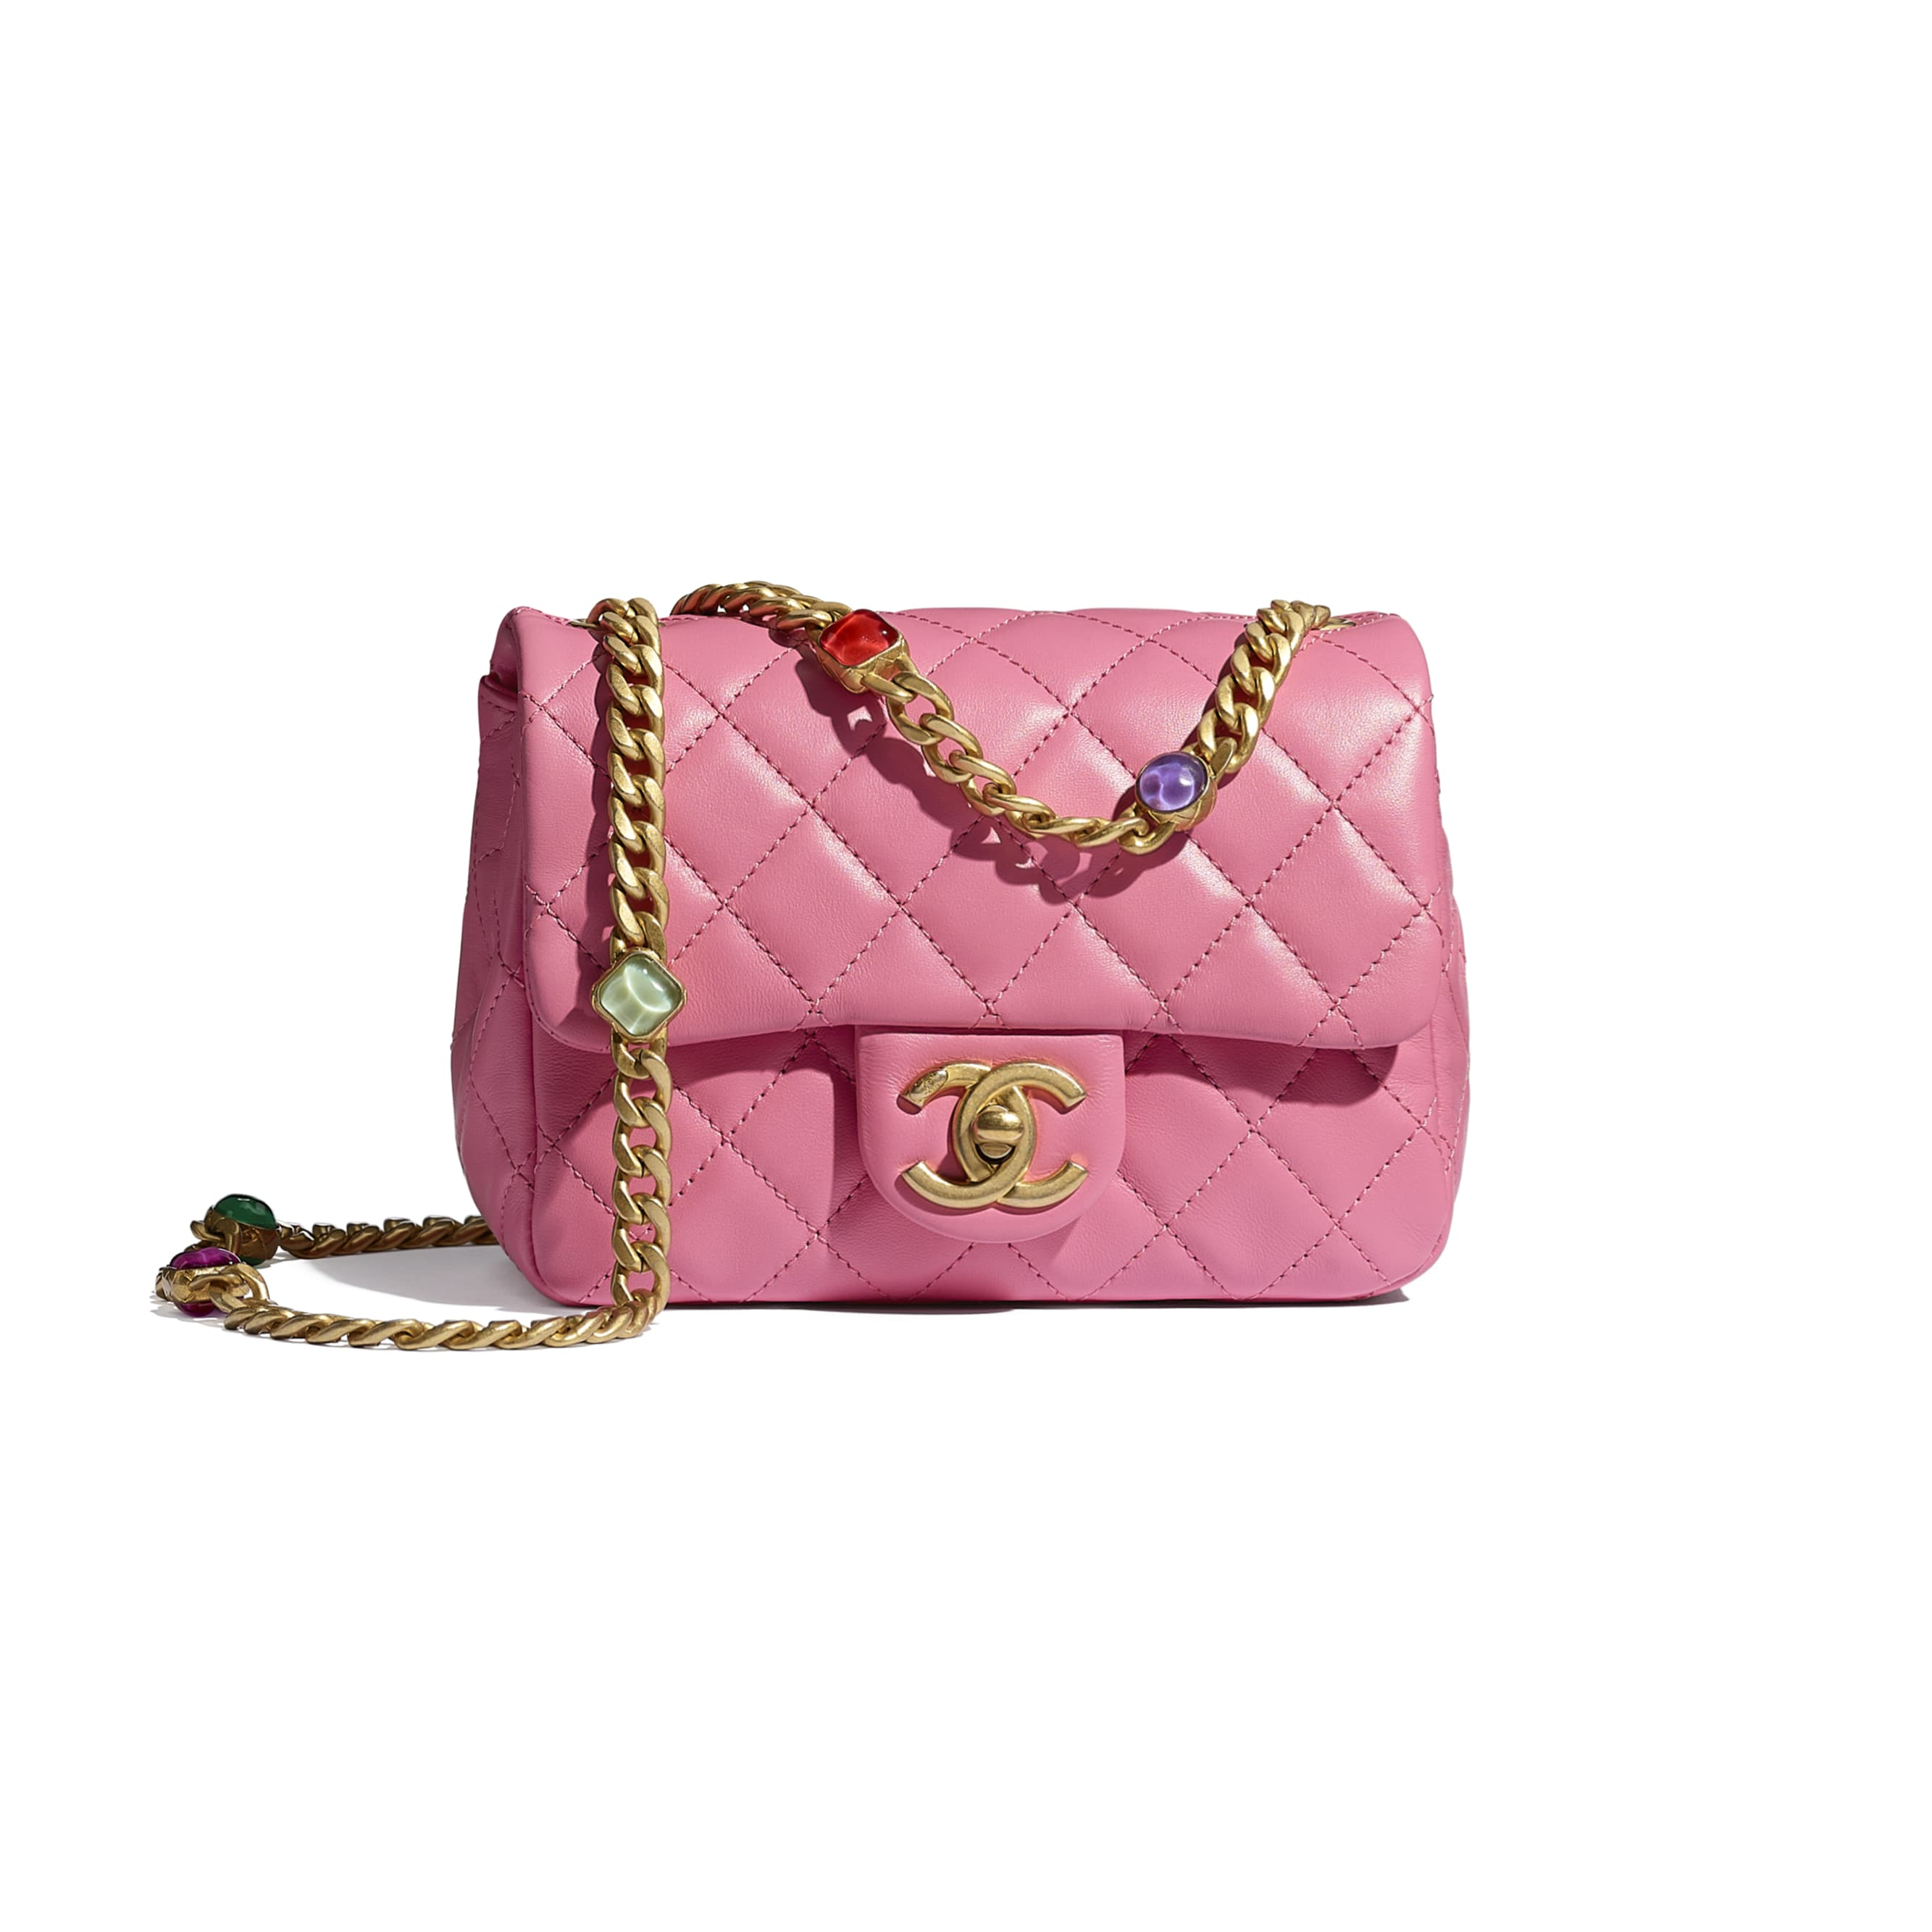 Flap Bag - Pink - Lambskin, Resin & Gold-Tone Metal - CHANEL - Default view - see standard sized version